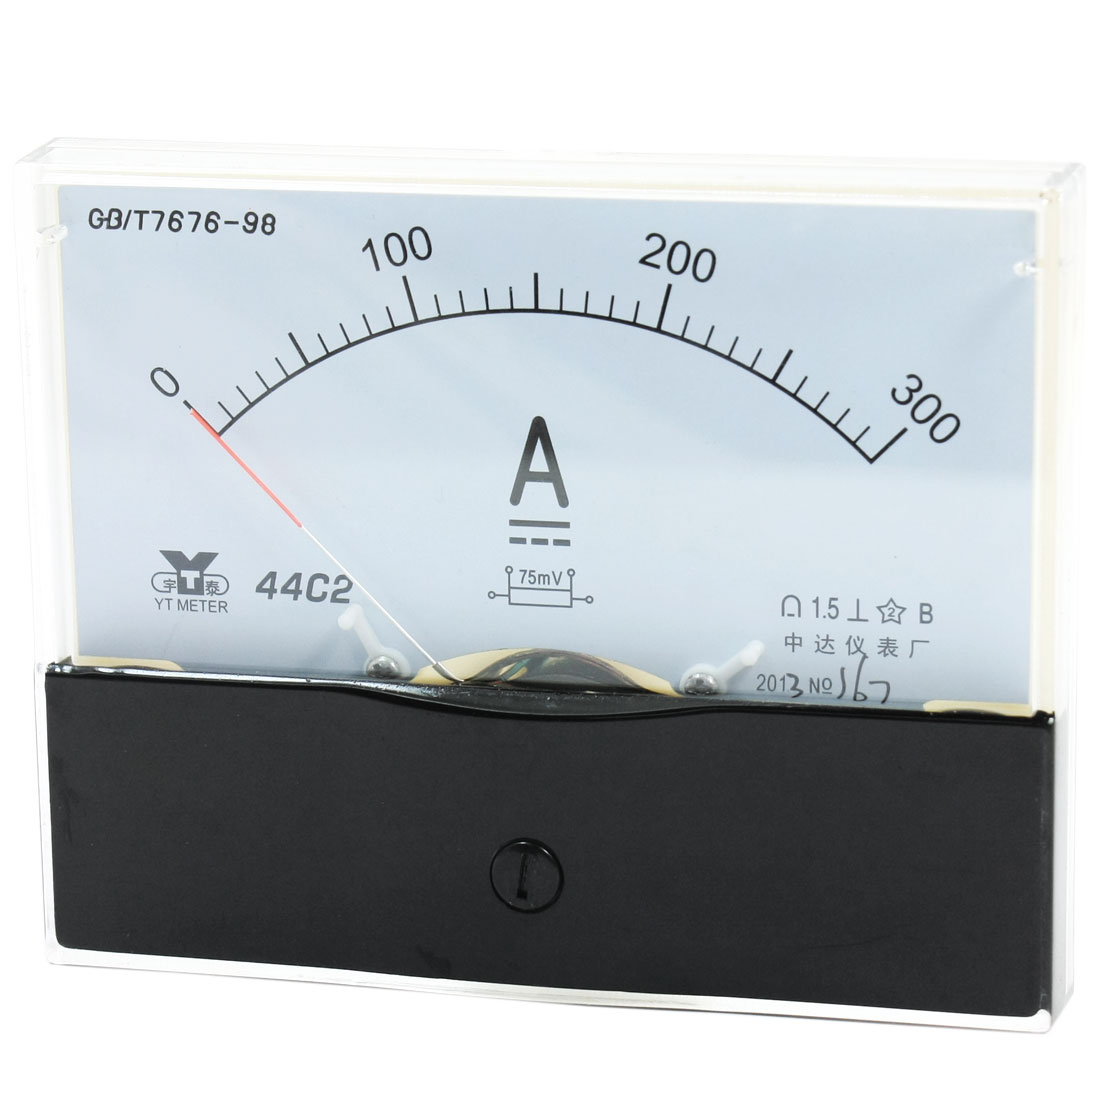 Measurement Tool Panel Mount Analog Ammeter Gauge DC 0 - 300A Measuring Range 44C2